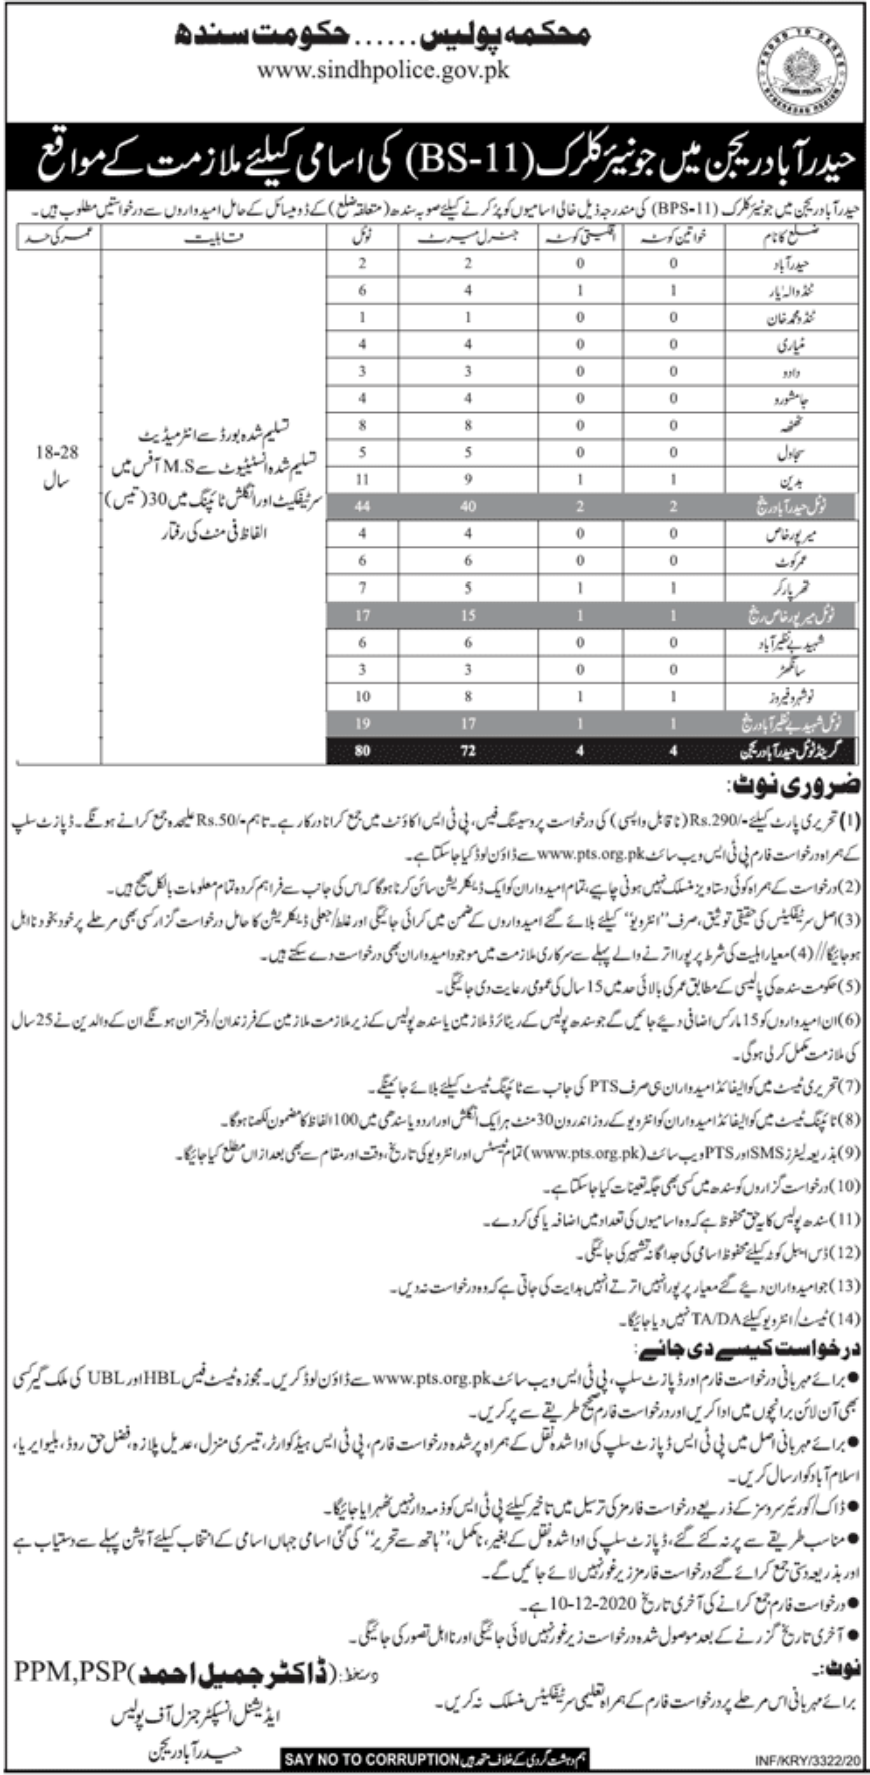 Government of Sindh Police Department Jobs November 2020